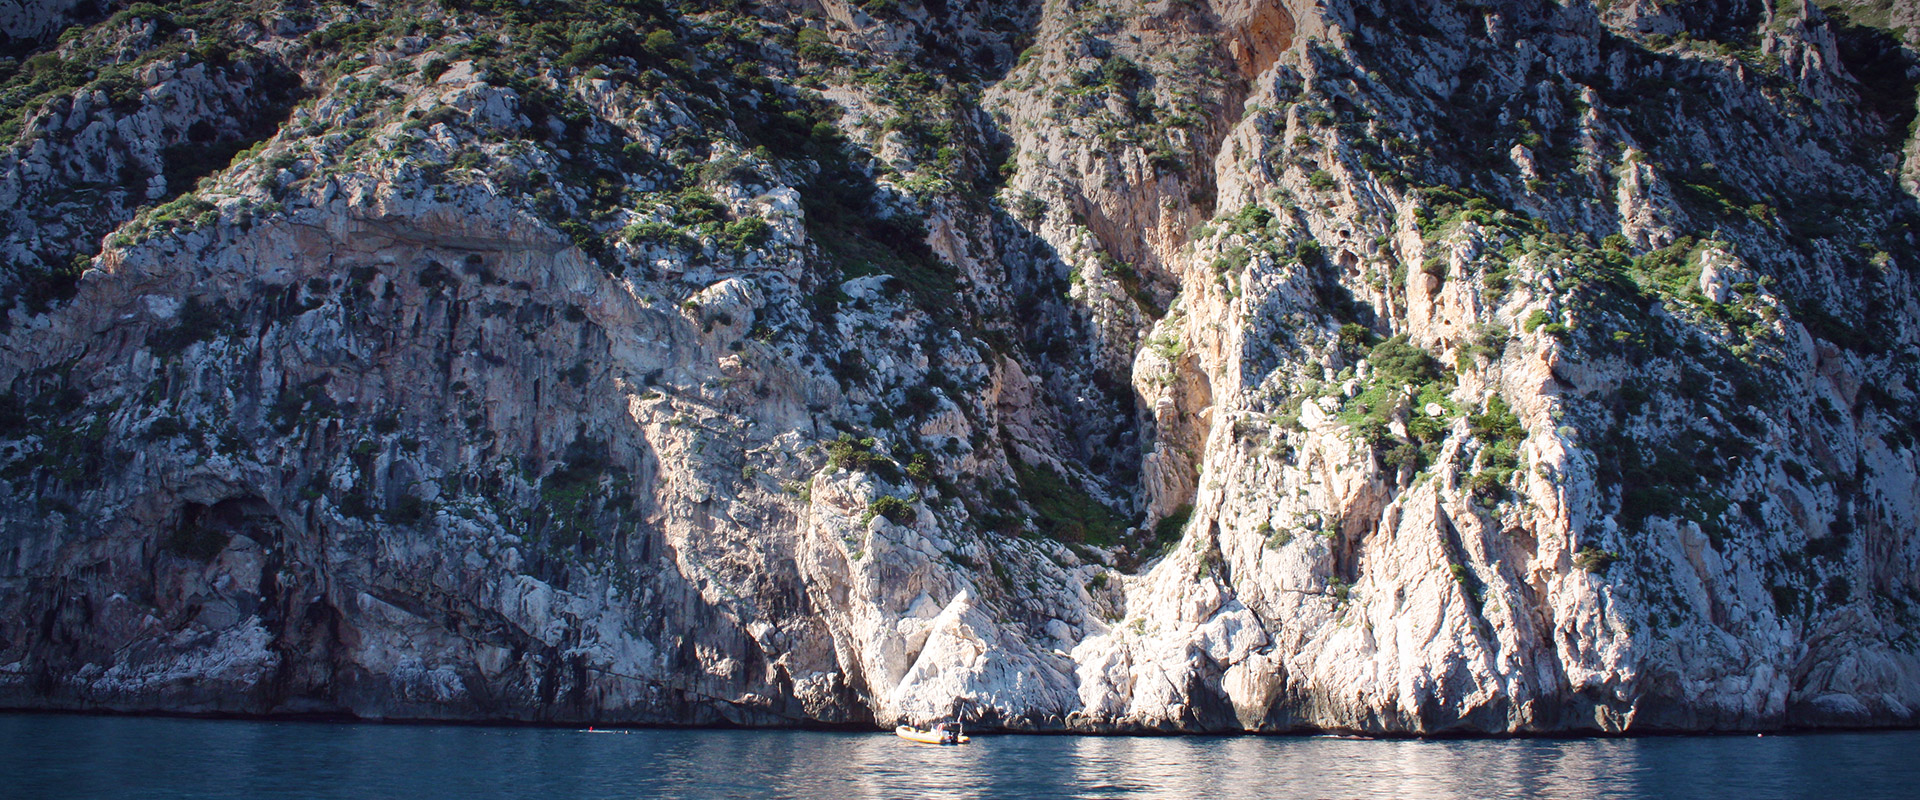 Cliffs in the Peñón de Ifach